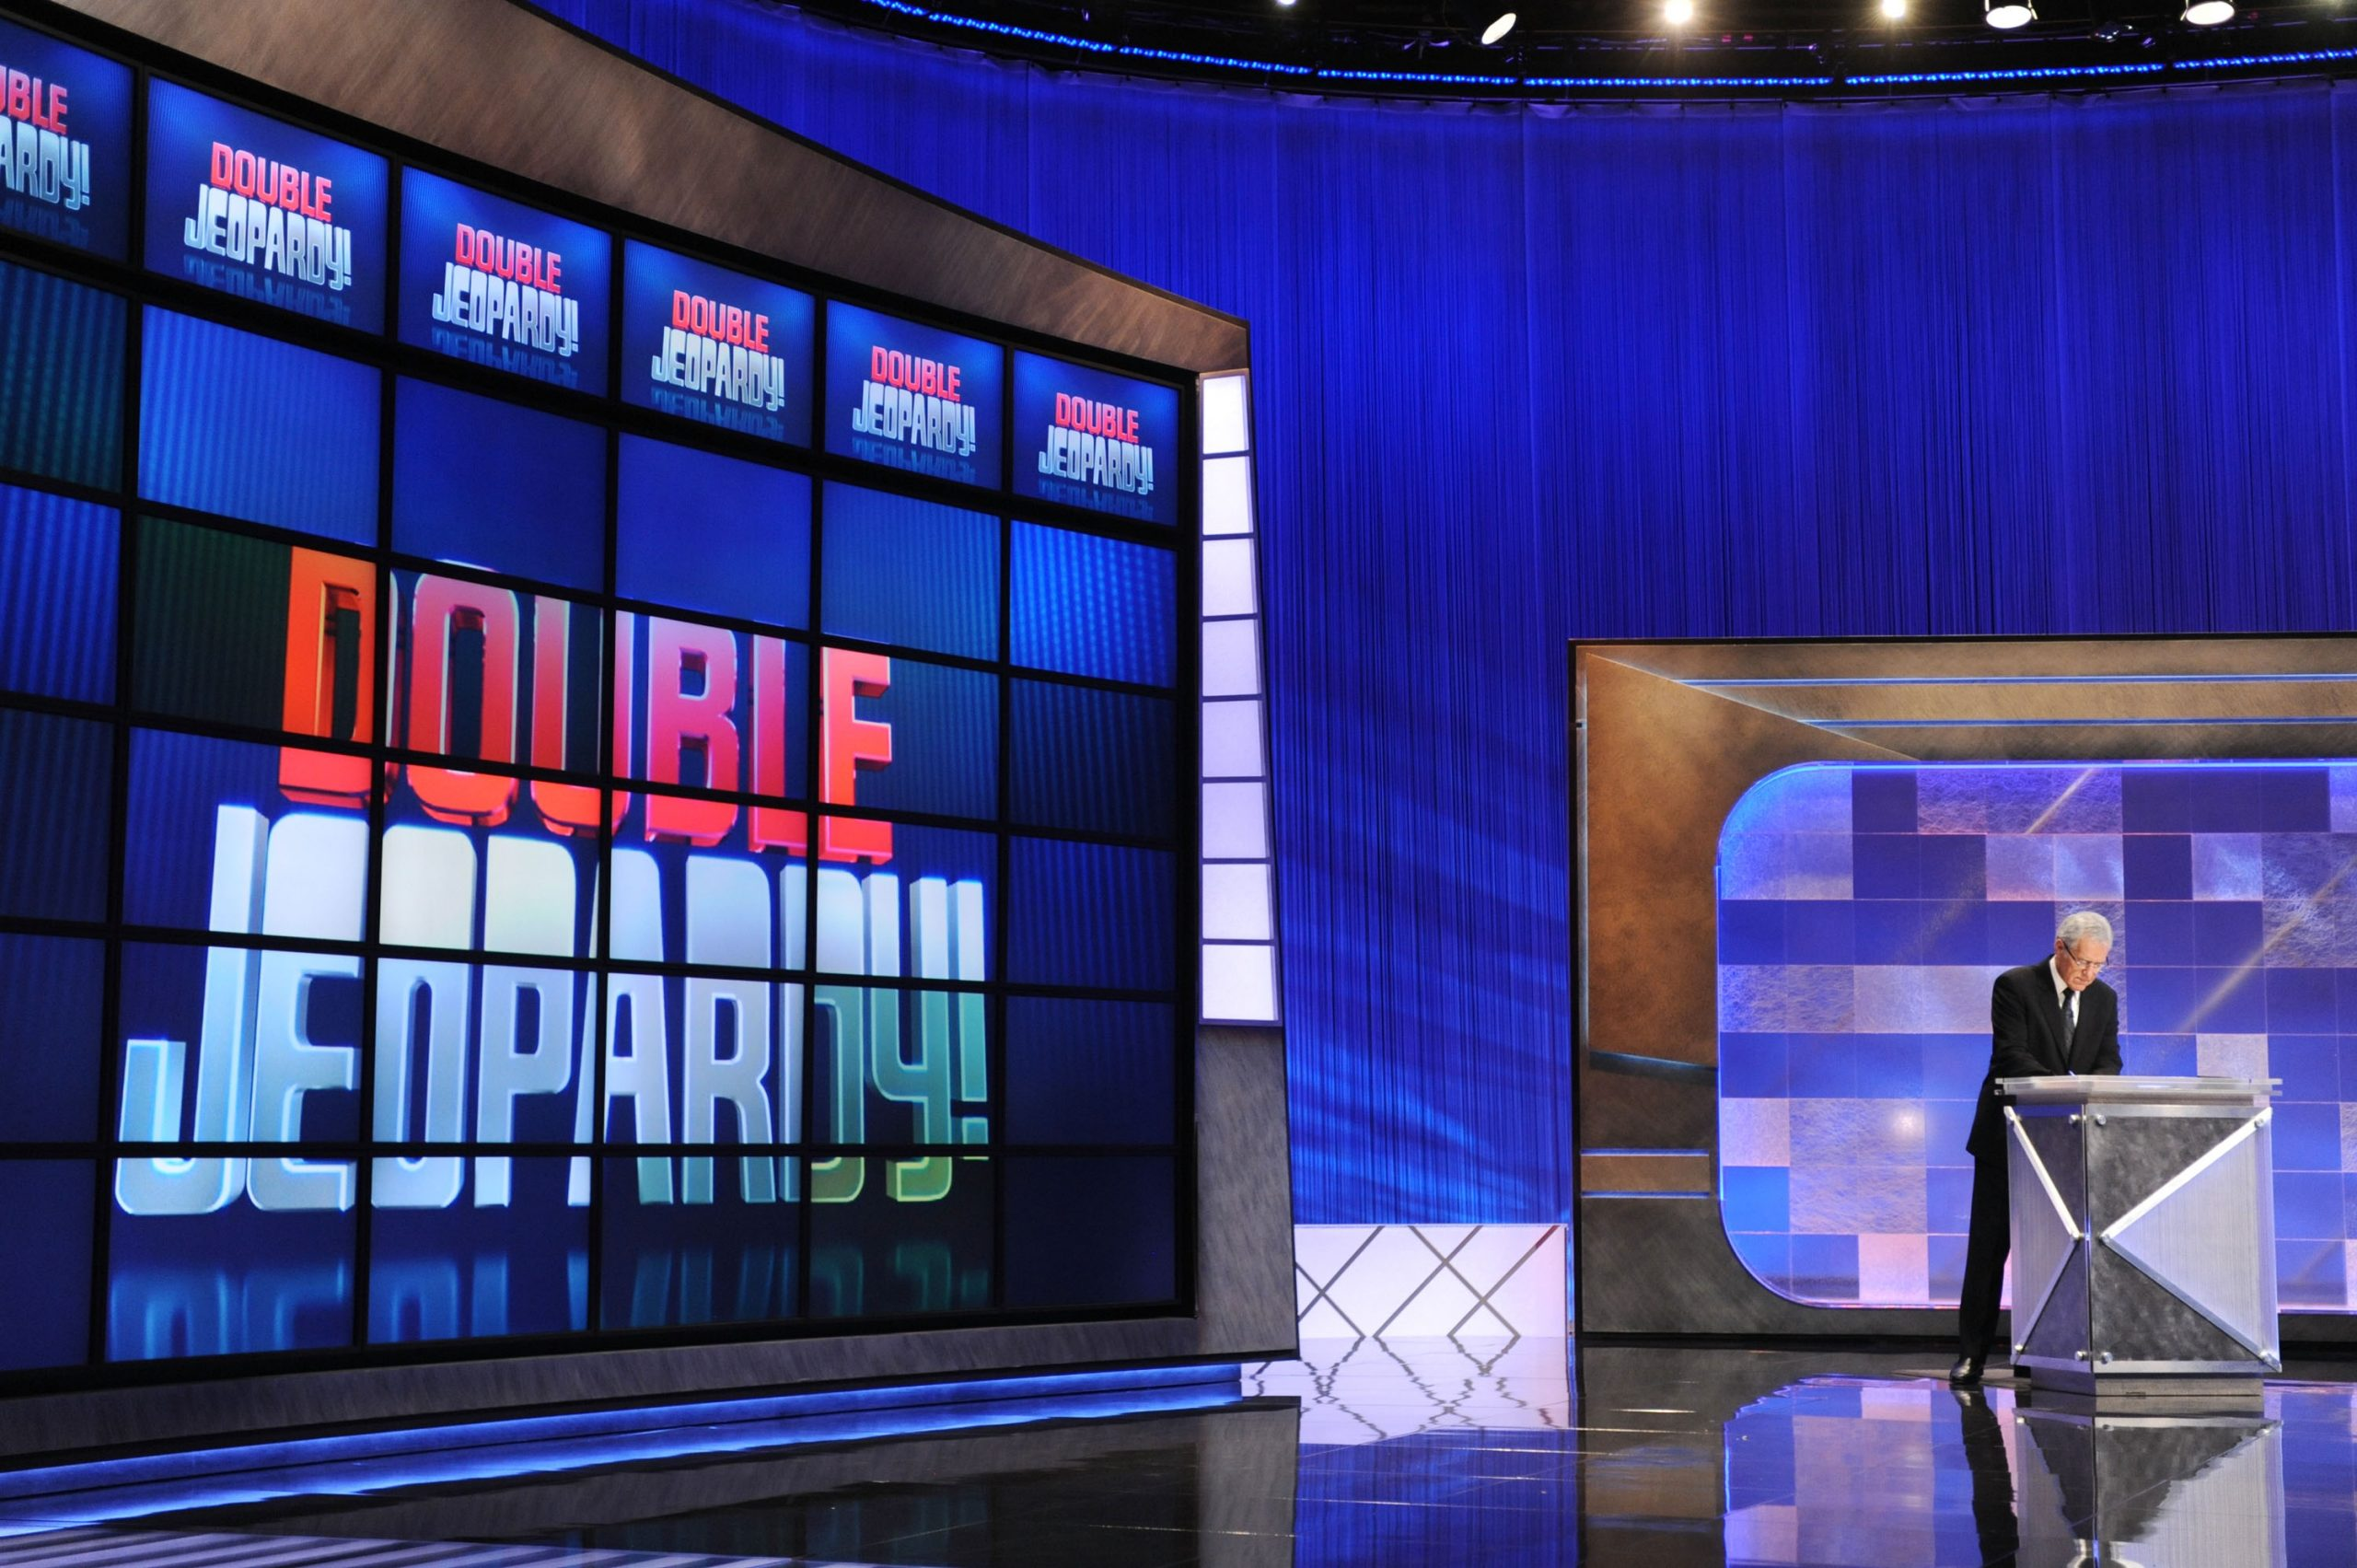 Game show host Alex Trebek rehearses his lines on the set of the 'Jeopardy!' Million Dollar Celebrity Invitational Tournament Show